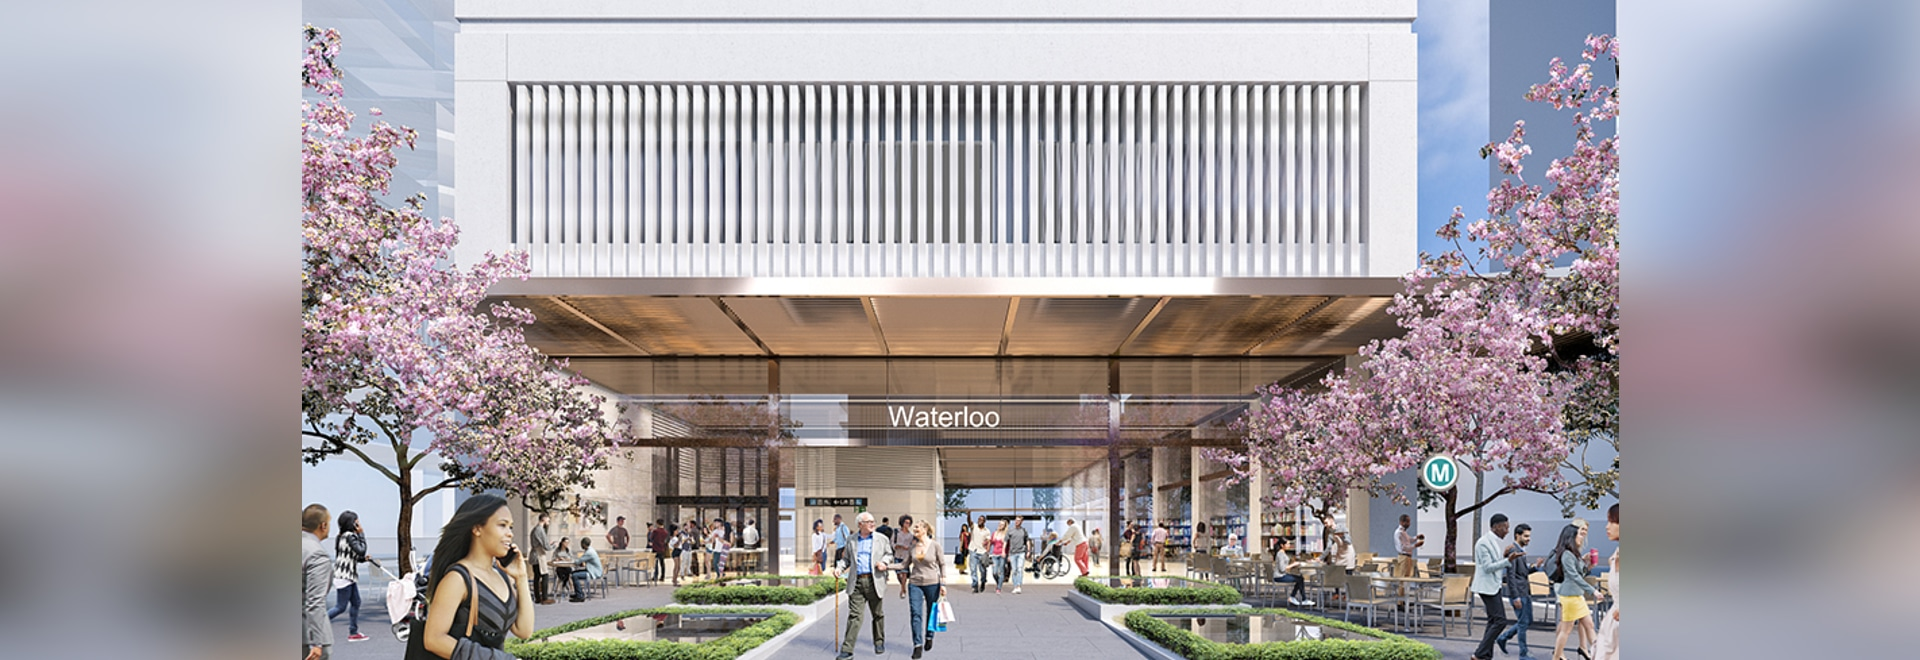 Indicative designs for the Waterloo Station development have been completed by Turner and Turf Design.